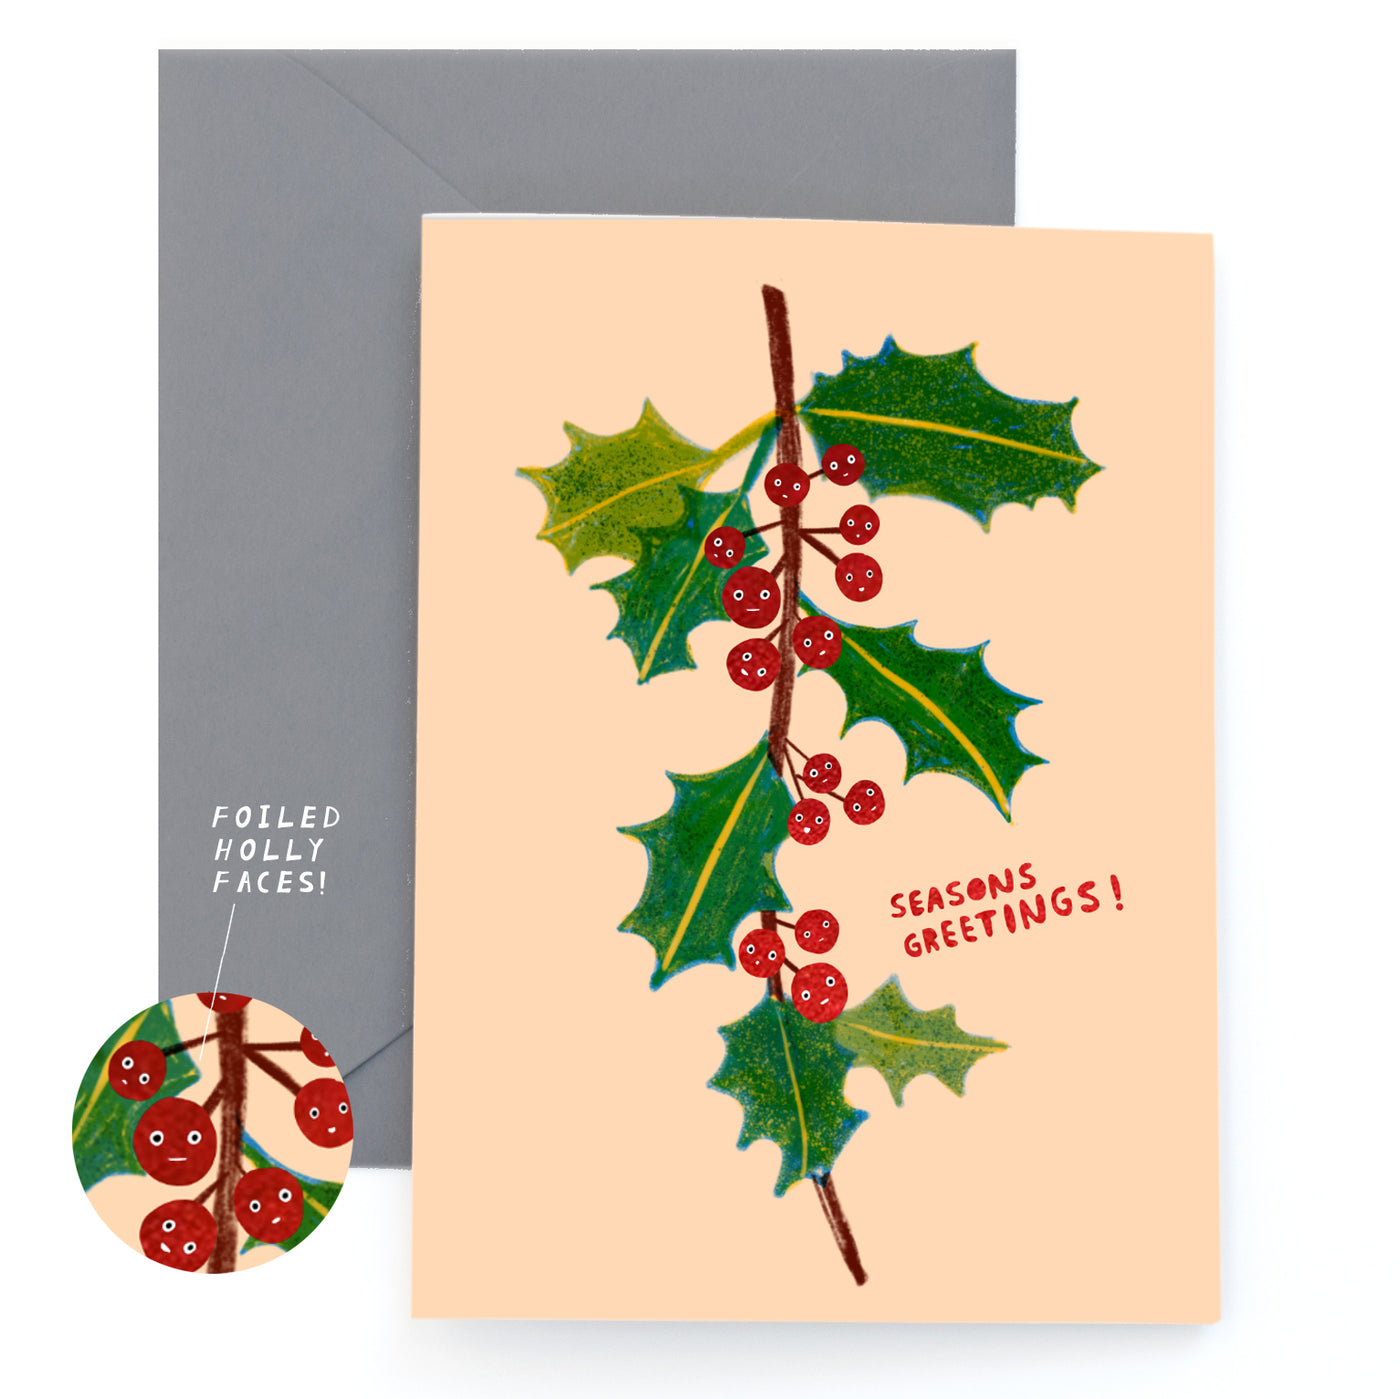 HOLLY FACES - Holiday Card